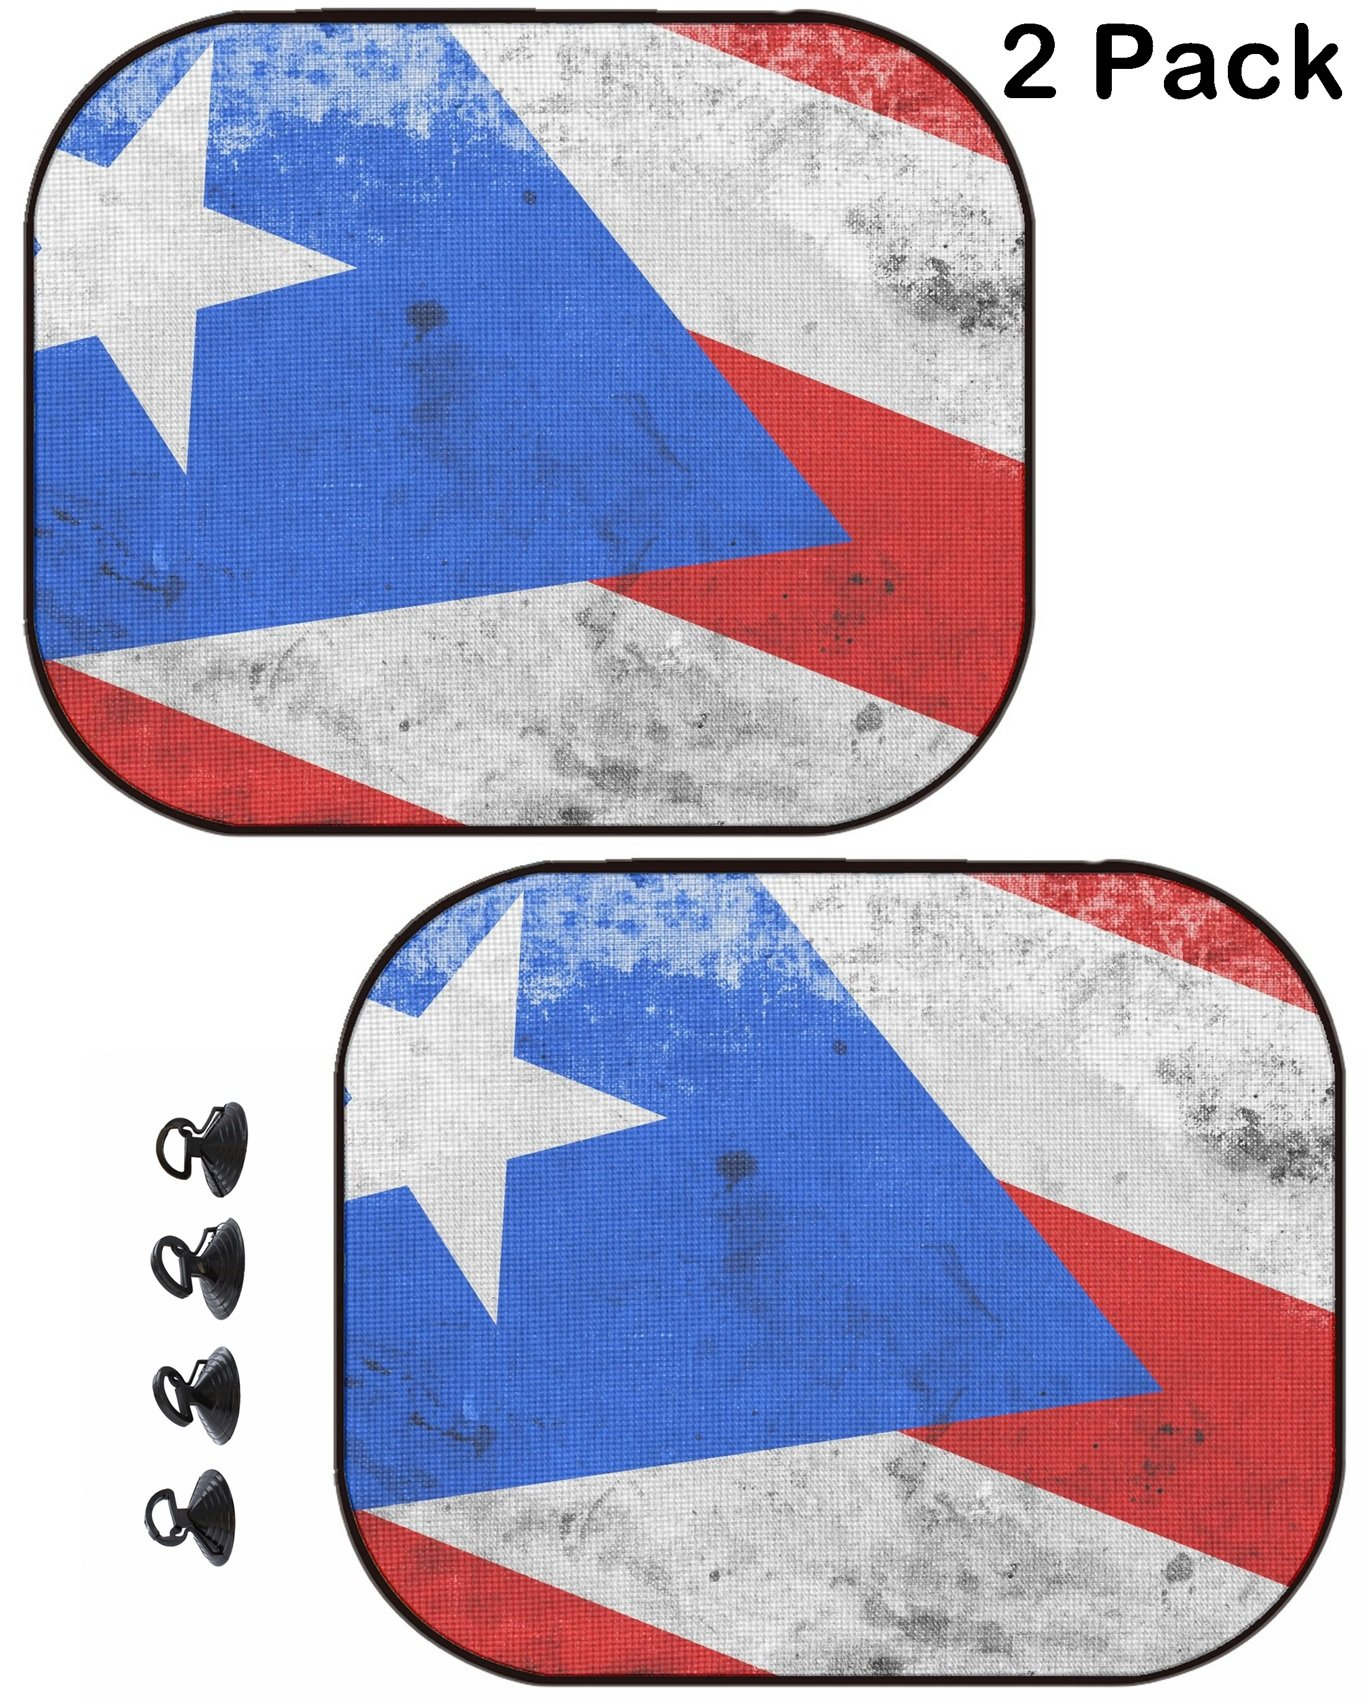 MSD Car Sun Shade Protector Side Window Block Damaging UV Rays Sunlight Heat for All Vehicles, 2 Pack Image ID: 31045928 Puerto Rico Flag with a Vintage and Old Look